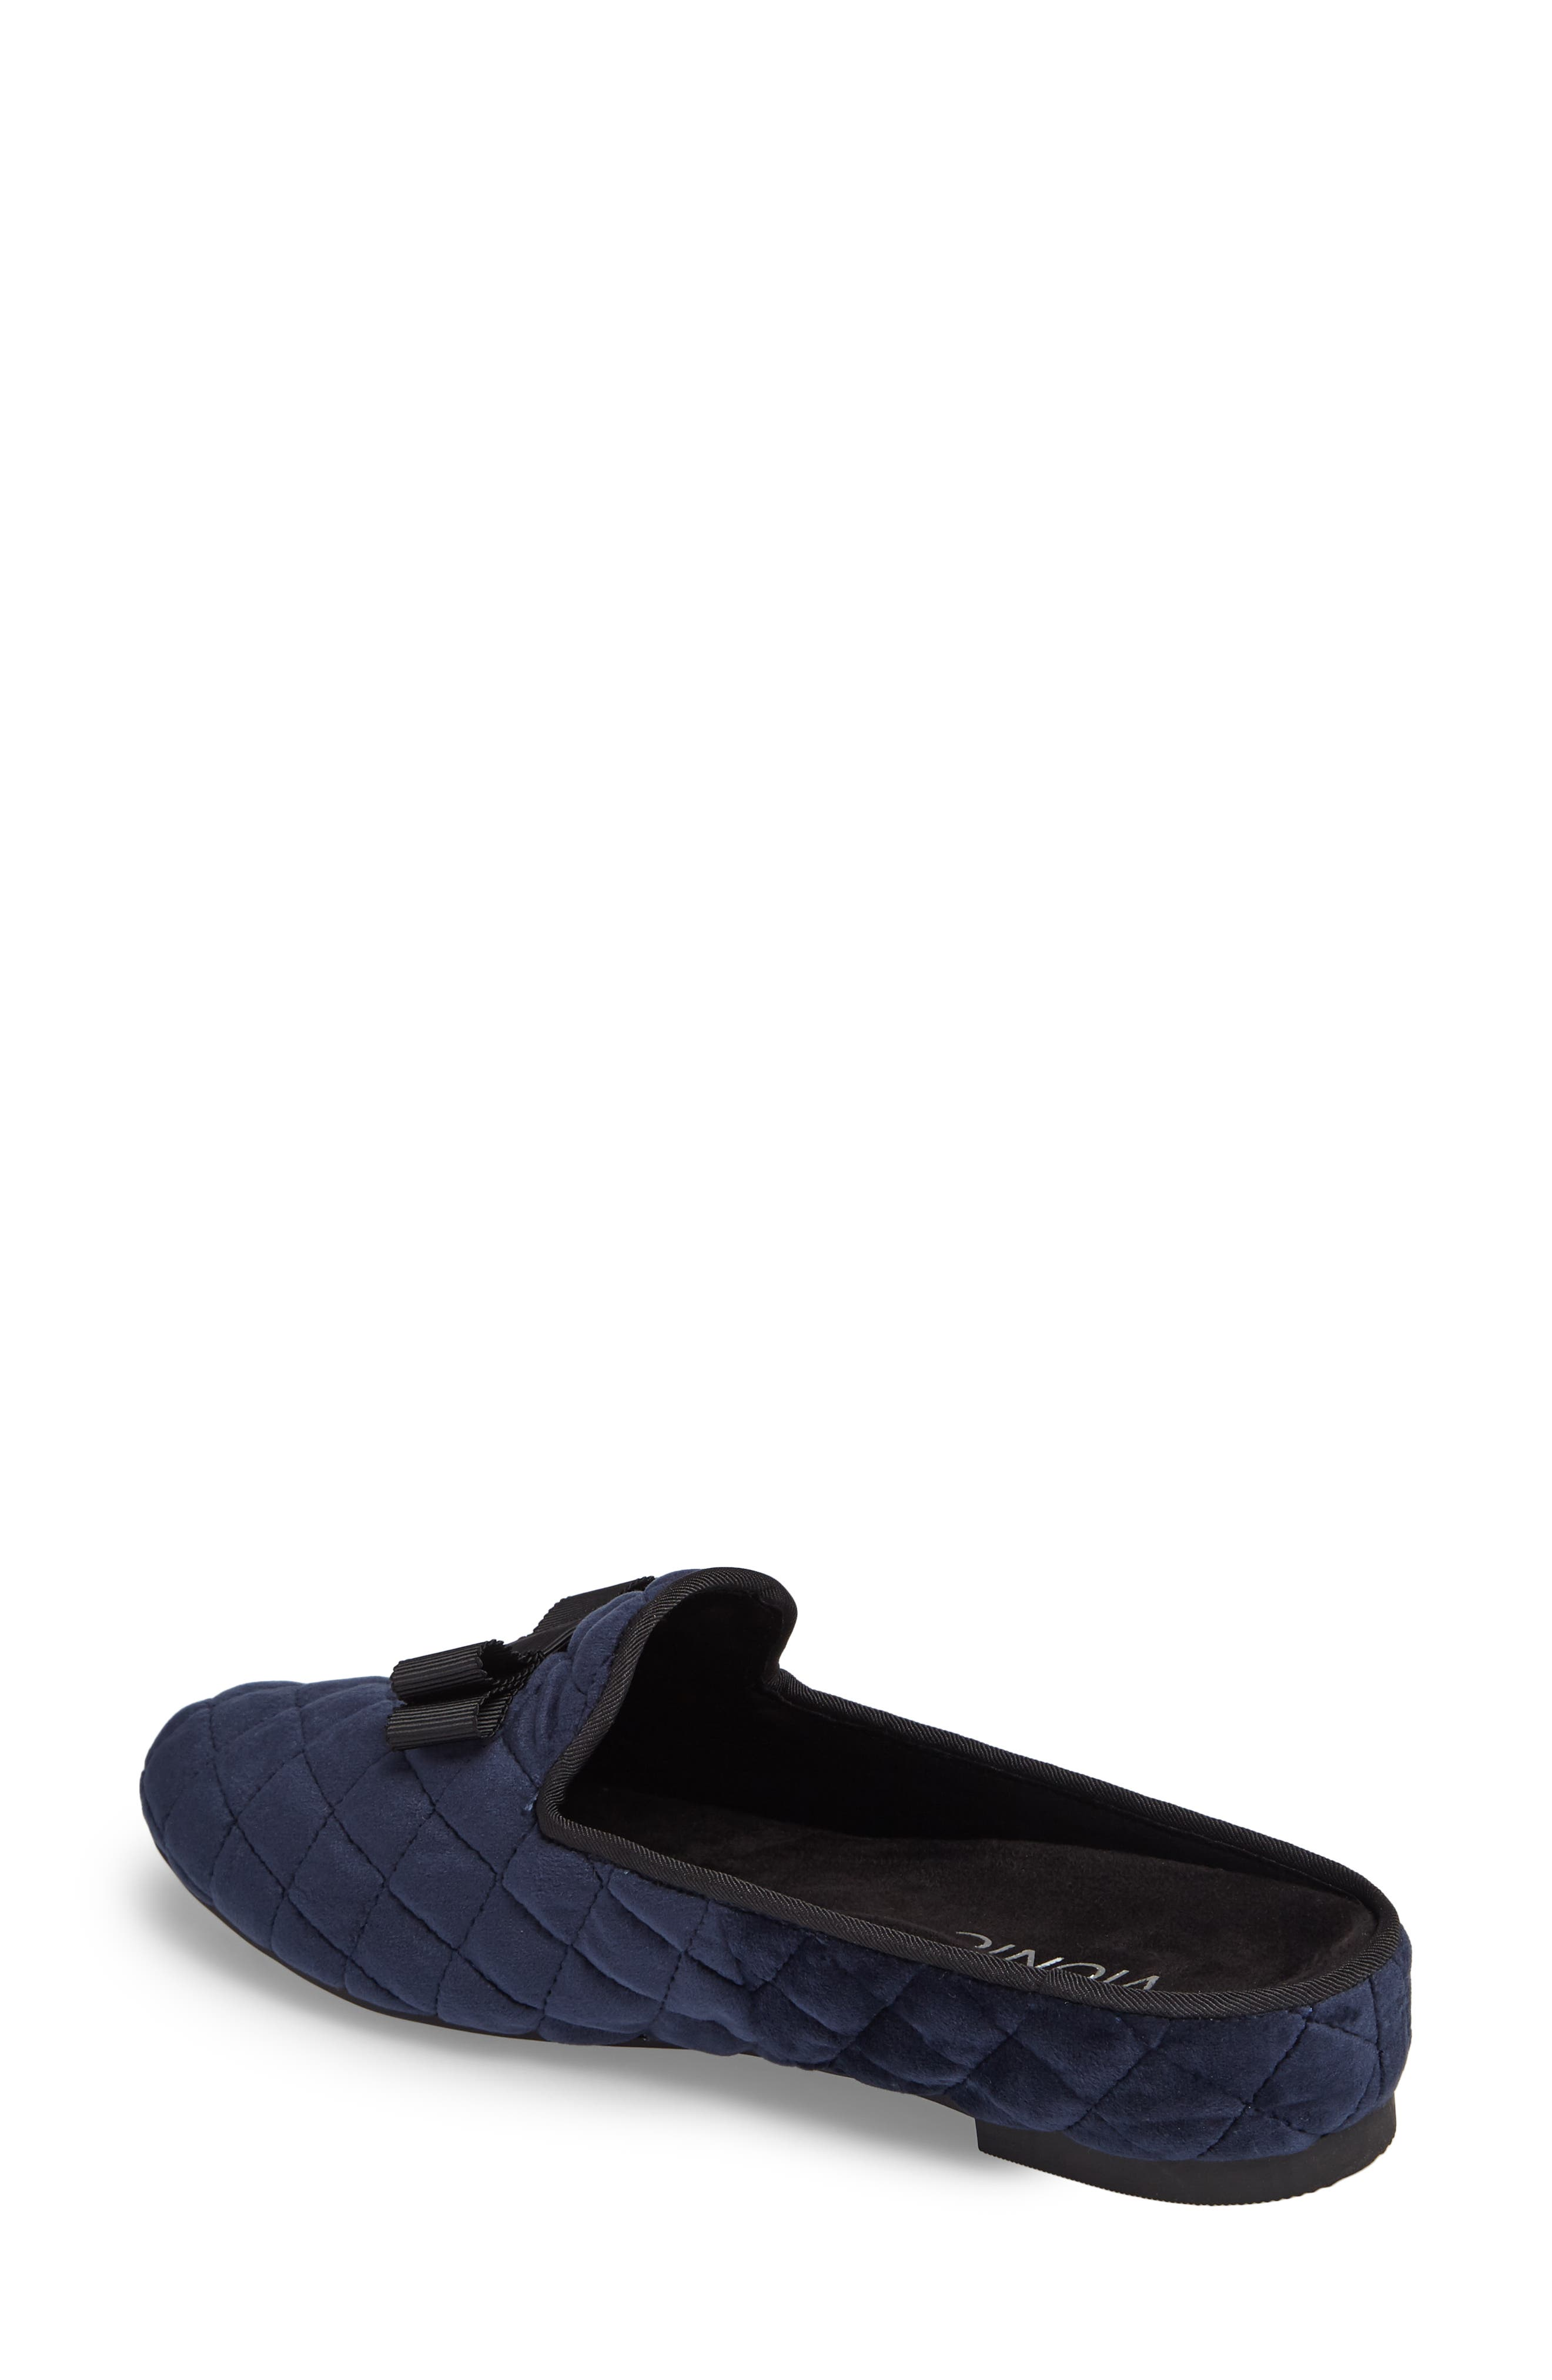 Alternate Image 2  - Vionic Eloise Slipper Mule (Women)